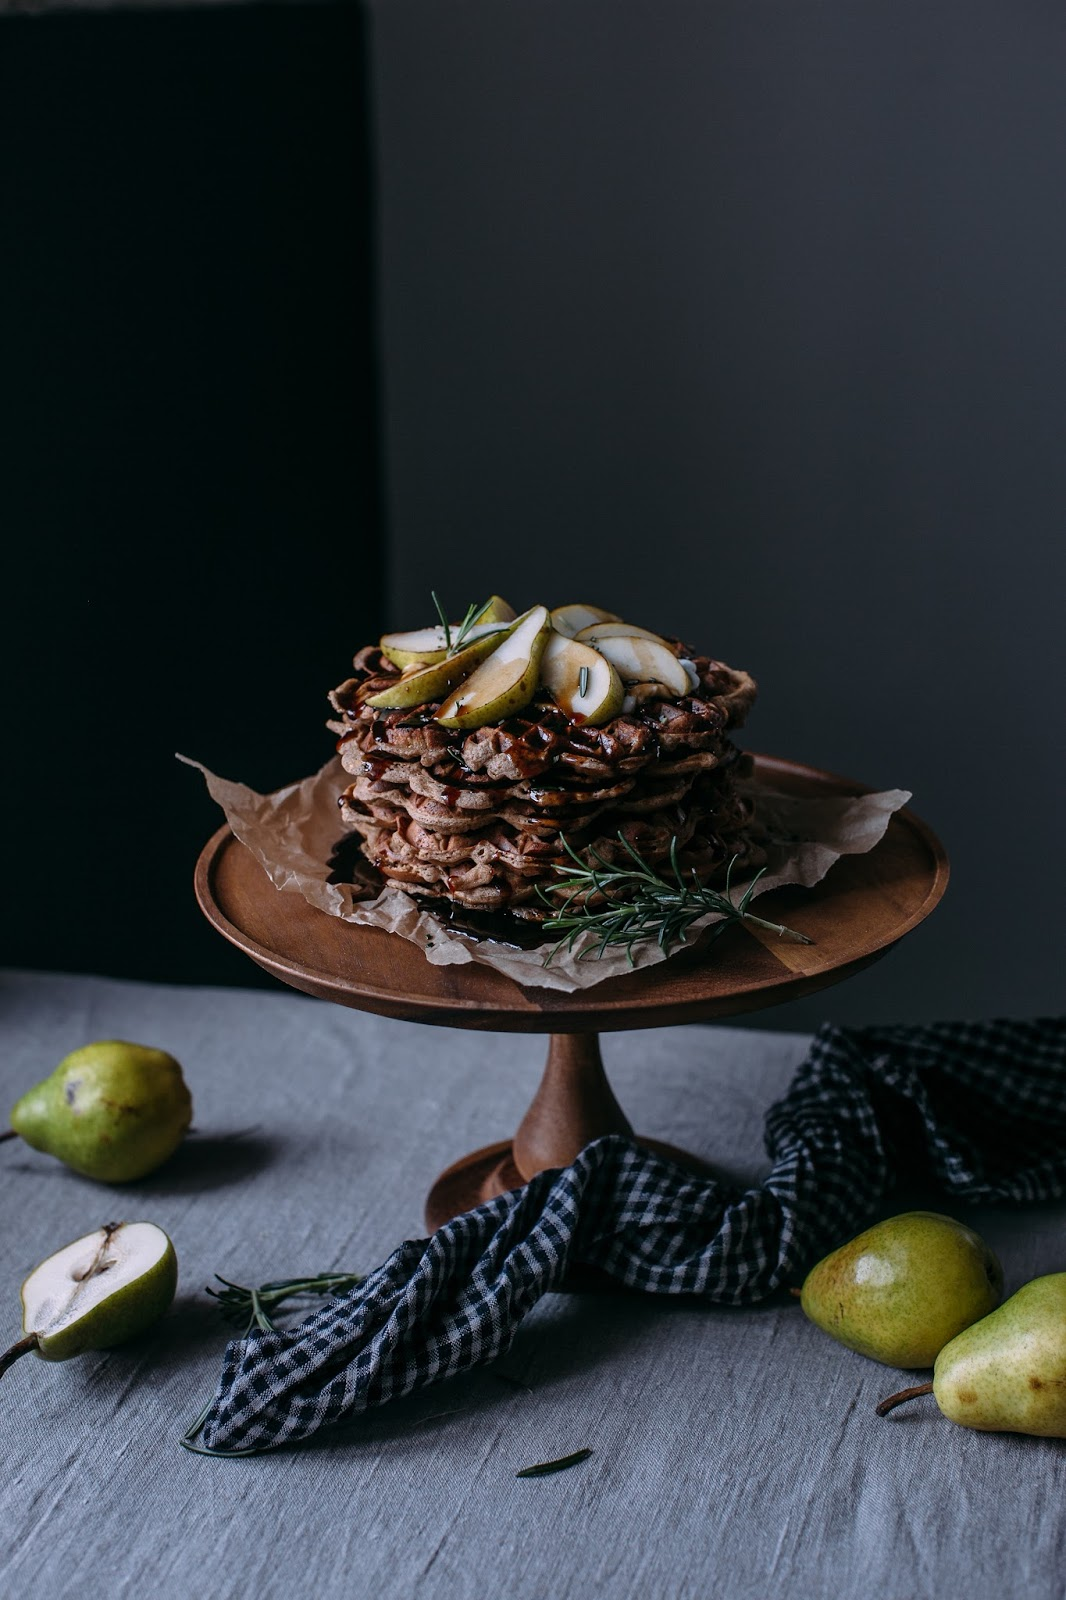 Glutenfree Apple Cinnamon Waffles With Pears And A Tea Infused Rosmary Coconut Sugar Syrup Our Food Stories Bloglovin